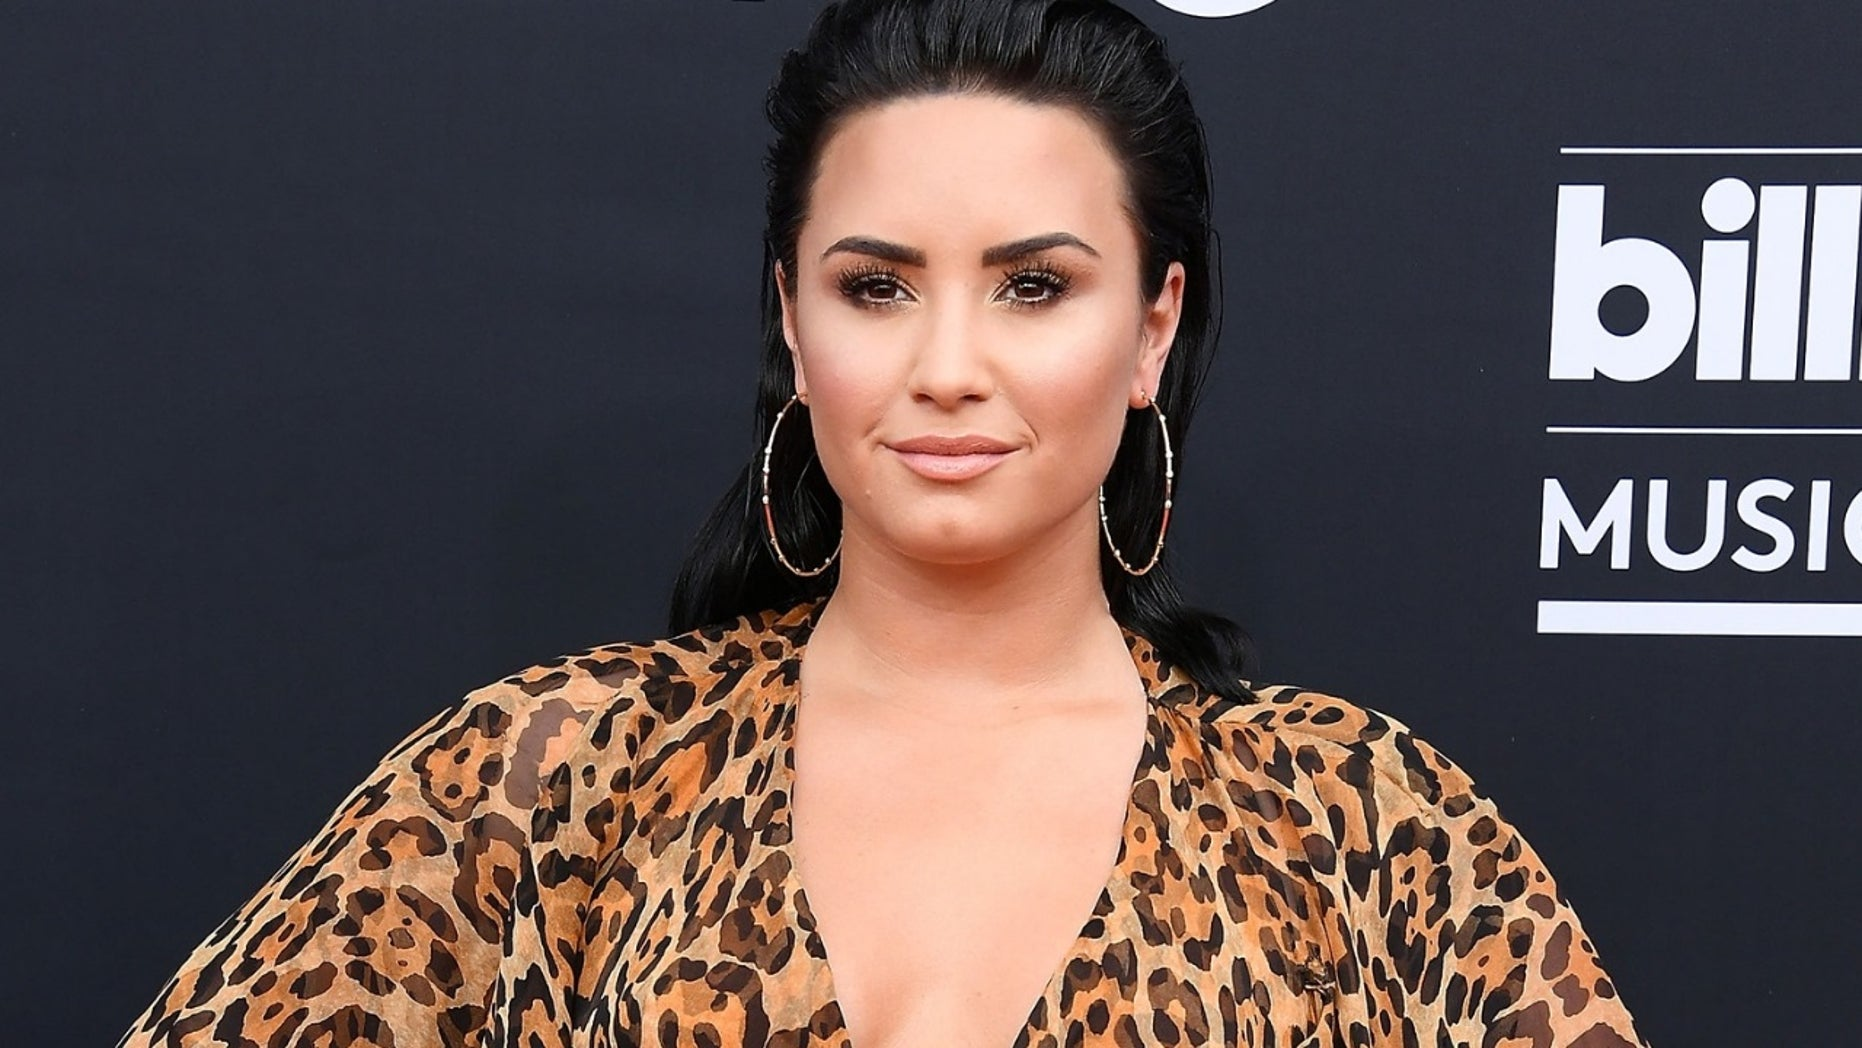 Singer Demi Lovato appeared shocked to learn that she had knocked out her trainer's front tooth while working out.